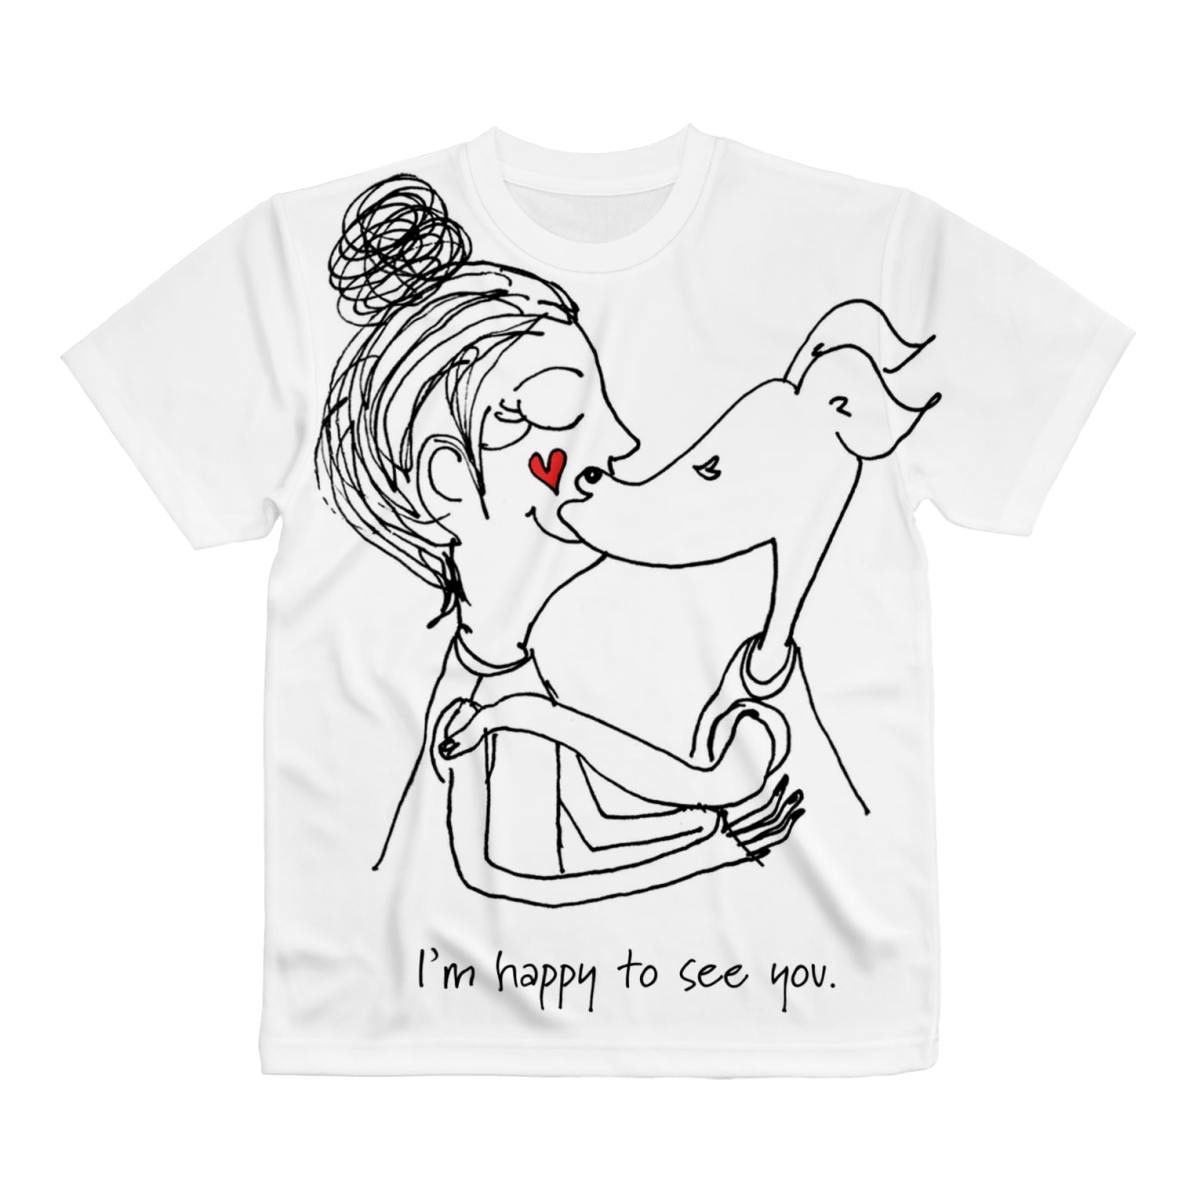 I'm happy to see you.|イタグレフルグラフィックTシャツ